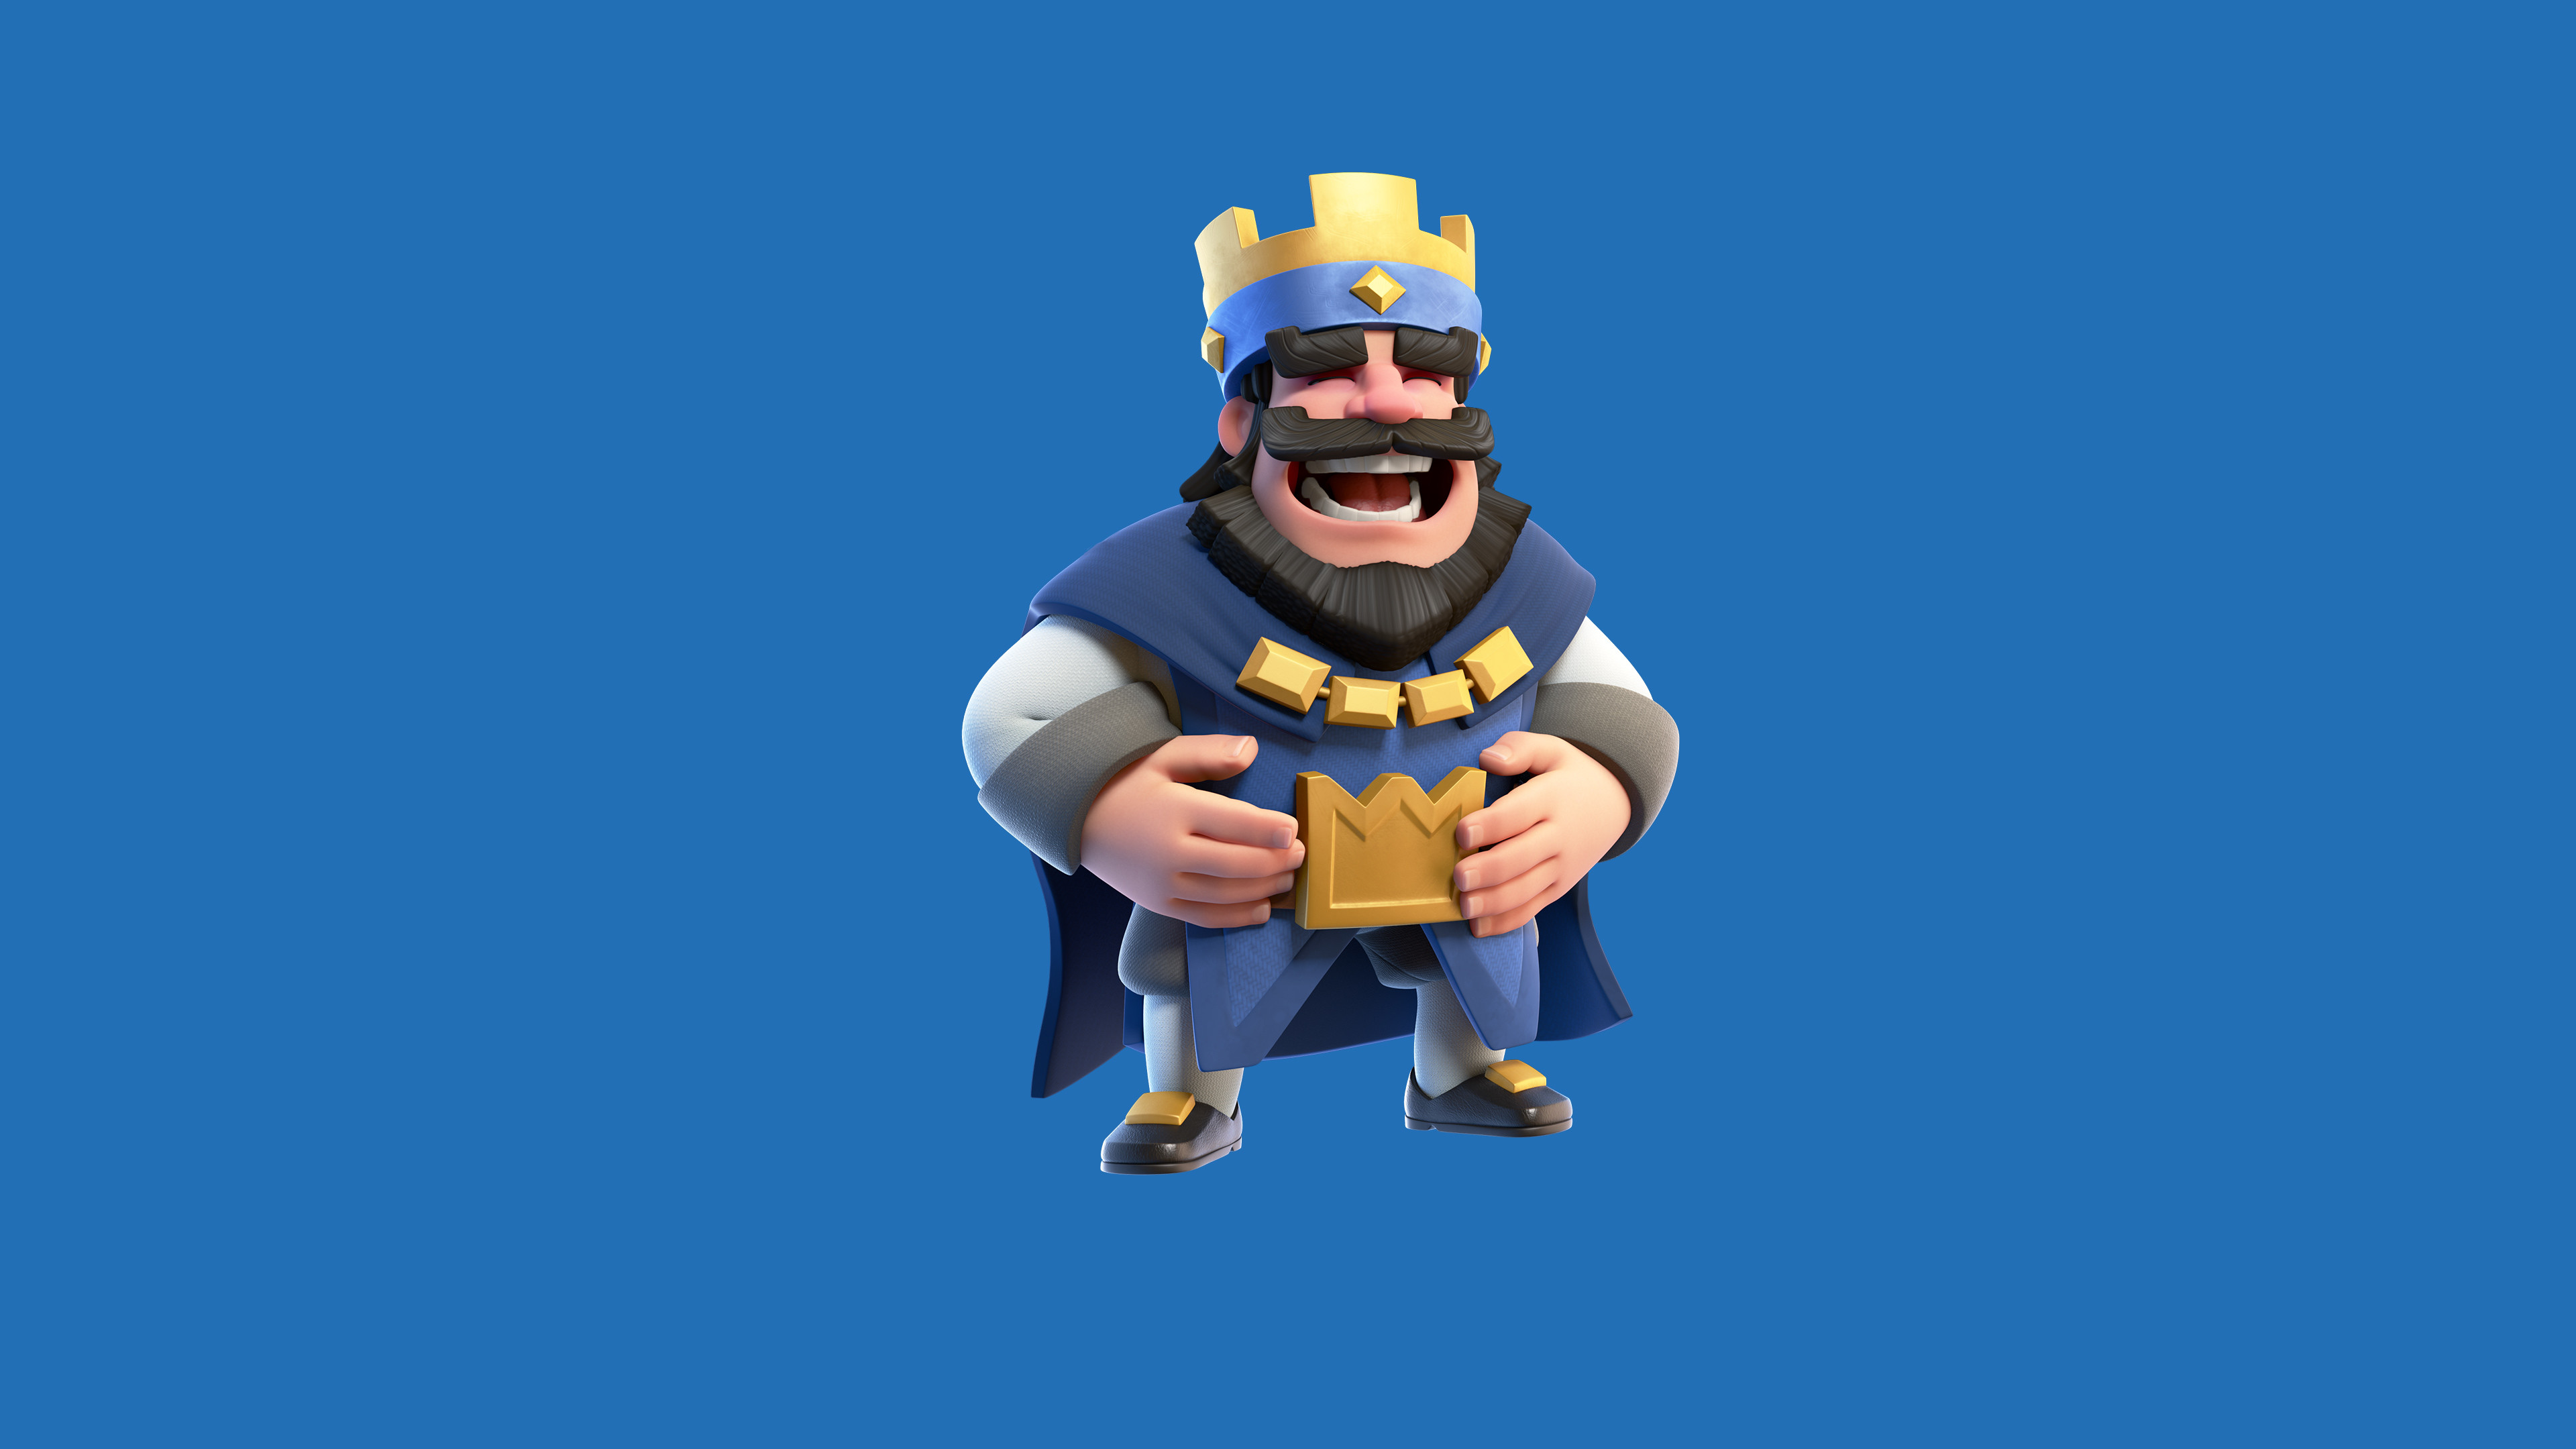 3840x2160 Computerspiele - Clash Royale Wallpaper